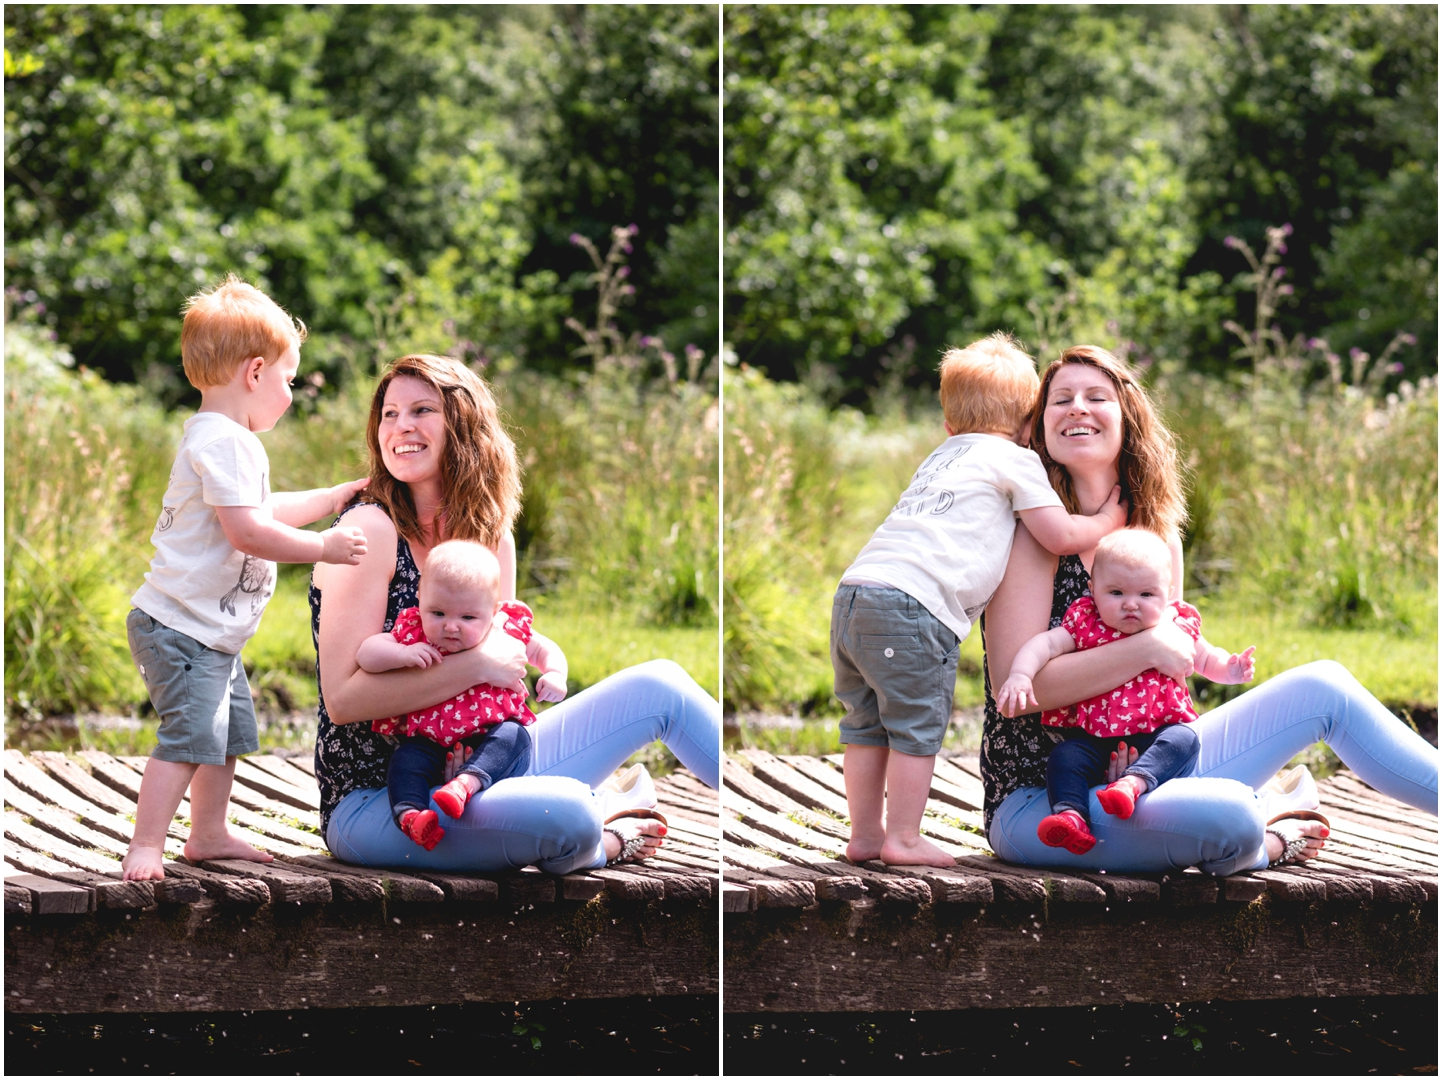 Family shoot in Sutton Park, Sutton Coldfield, by Lisa Carpenter Photography, lifestyle photographer based in the West Midlands